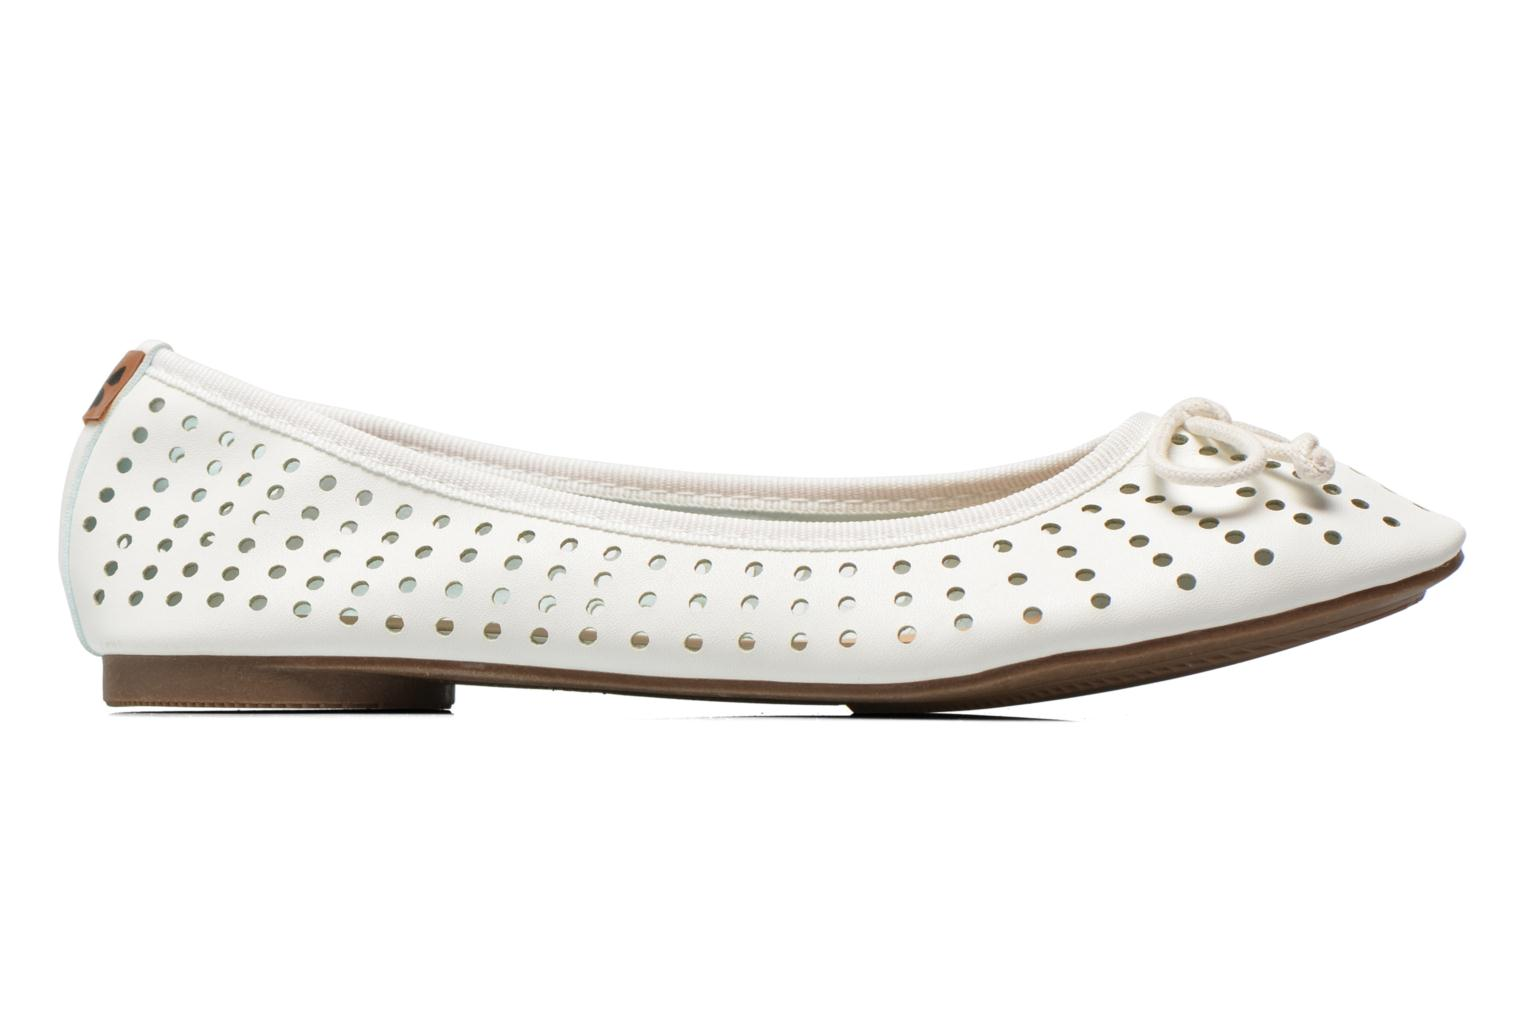 Ballerines Molly Bracken Girly Blanc vue derrière